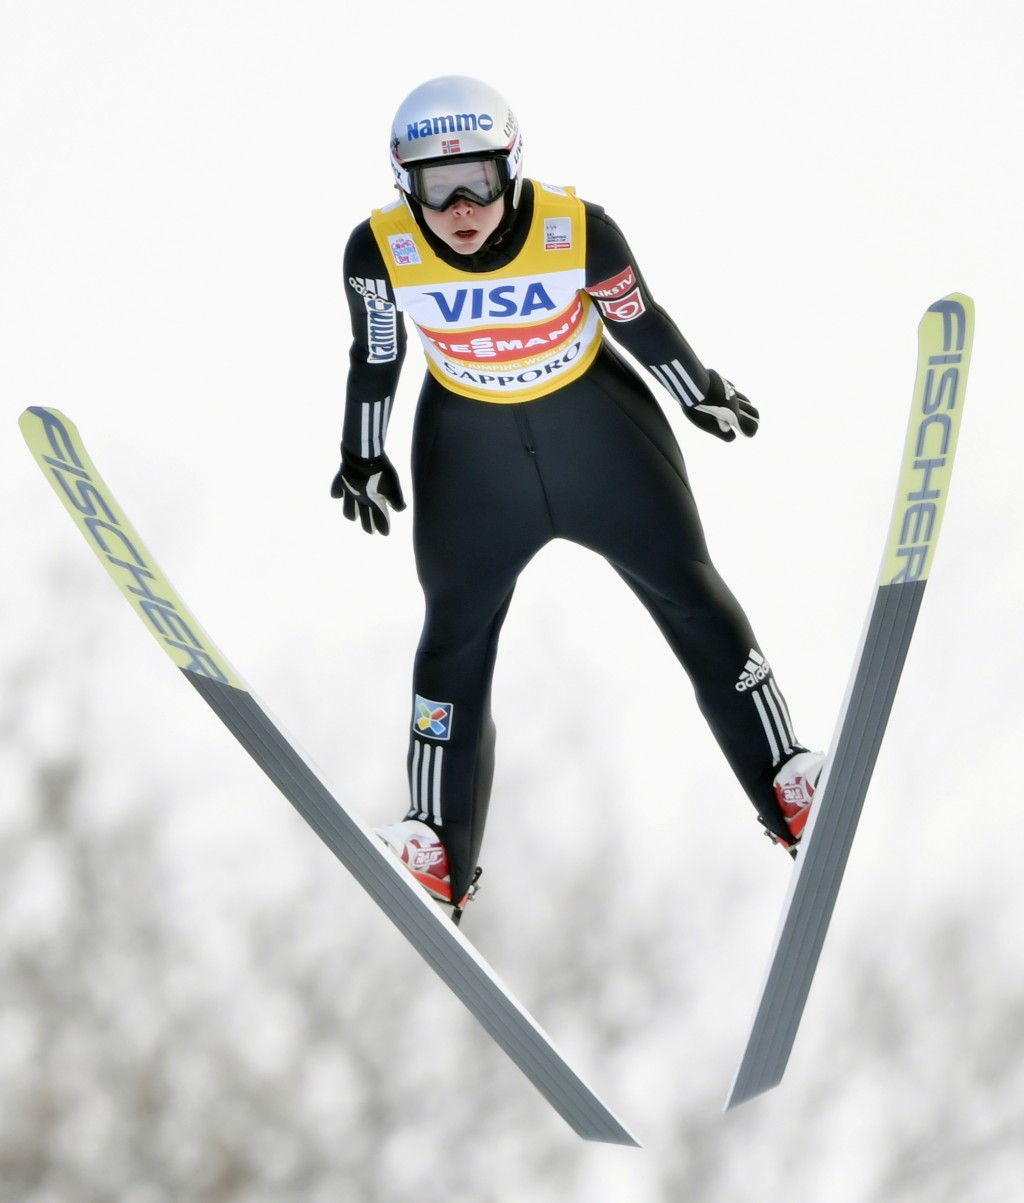 Maren Lundby of Norway soars through the air on her way to her win a World Cup ski jumping event in Sapporo, northern Japan, Saturday, Jan. 13, 2018.